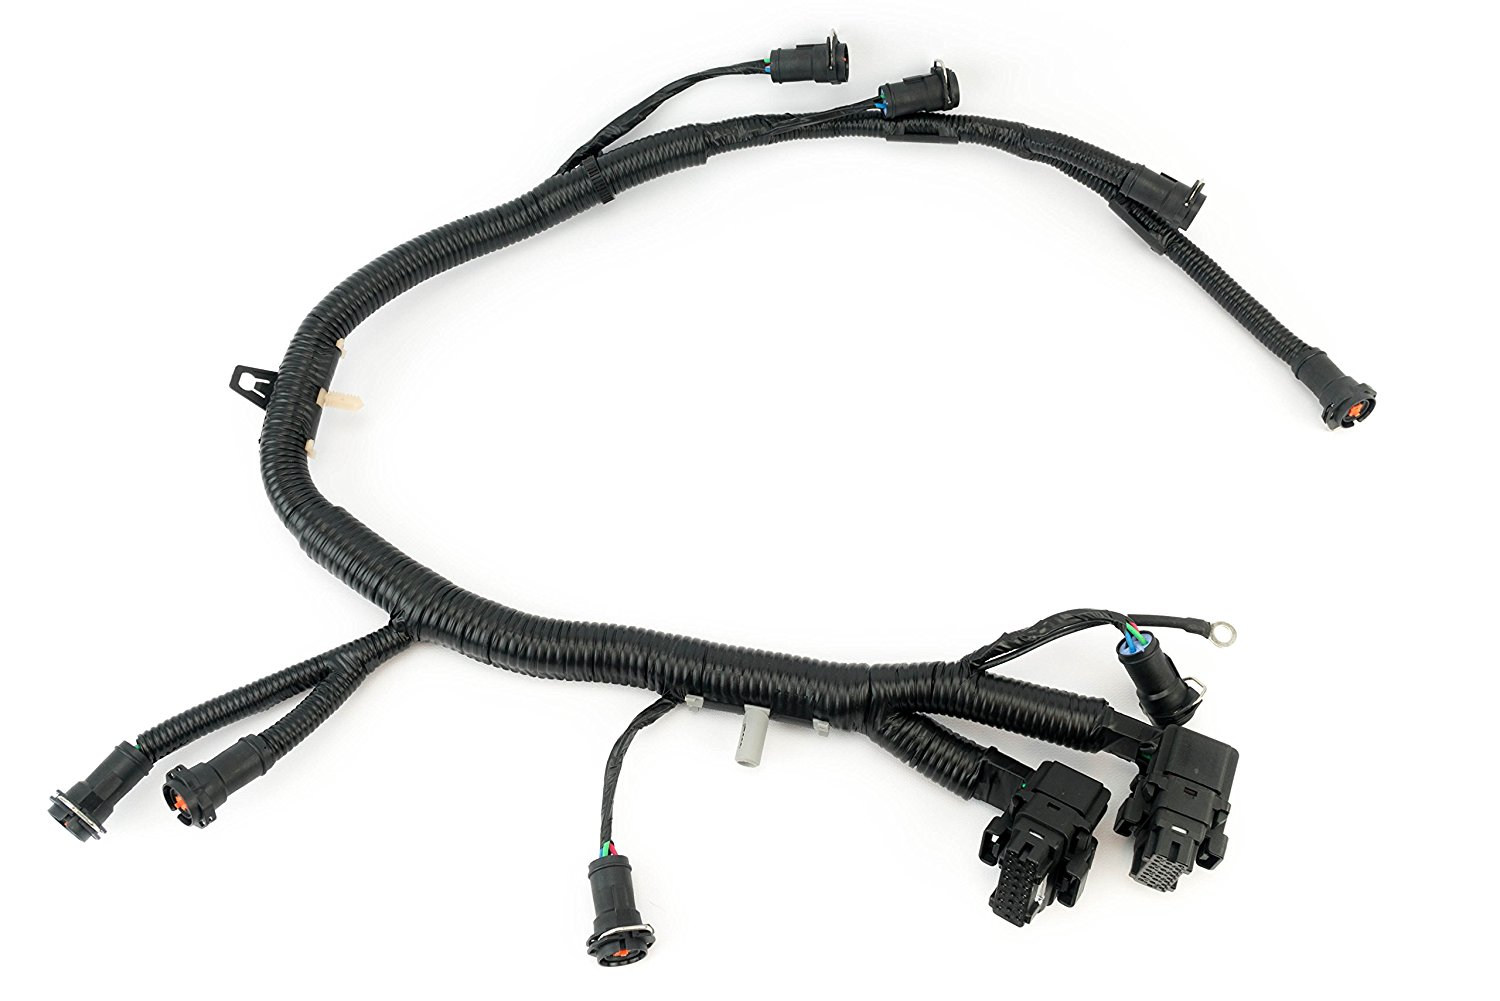 Ficm Wiring Harness Solutions 2006 Ford F350 6 0 Relay Location Aa Ignition S 2004 Trailer Diagram